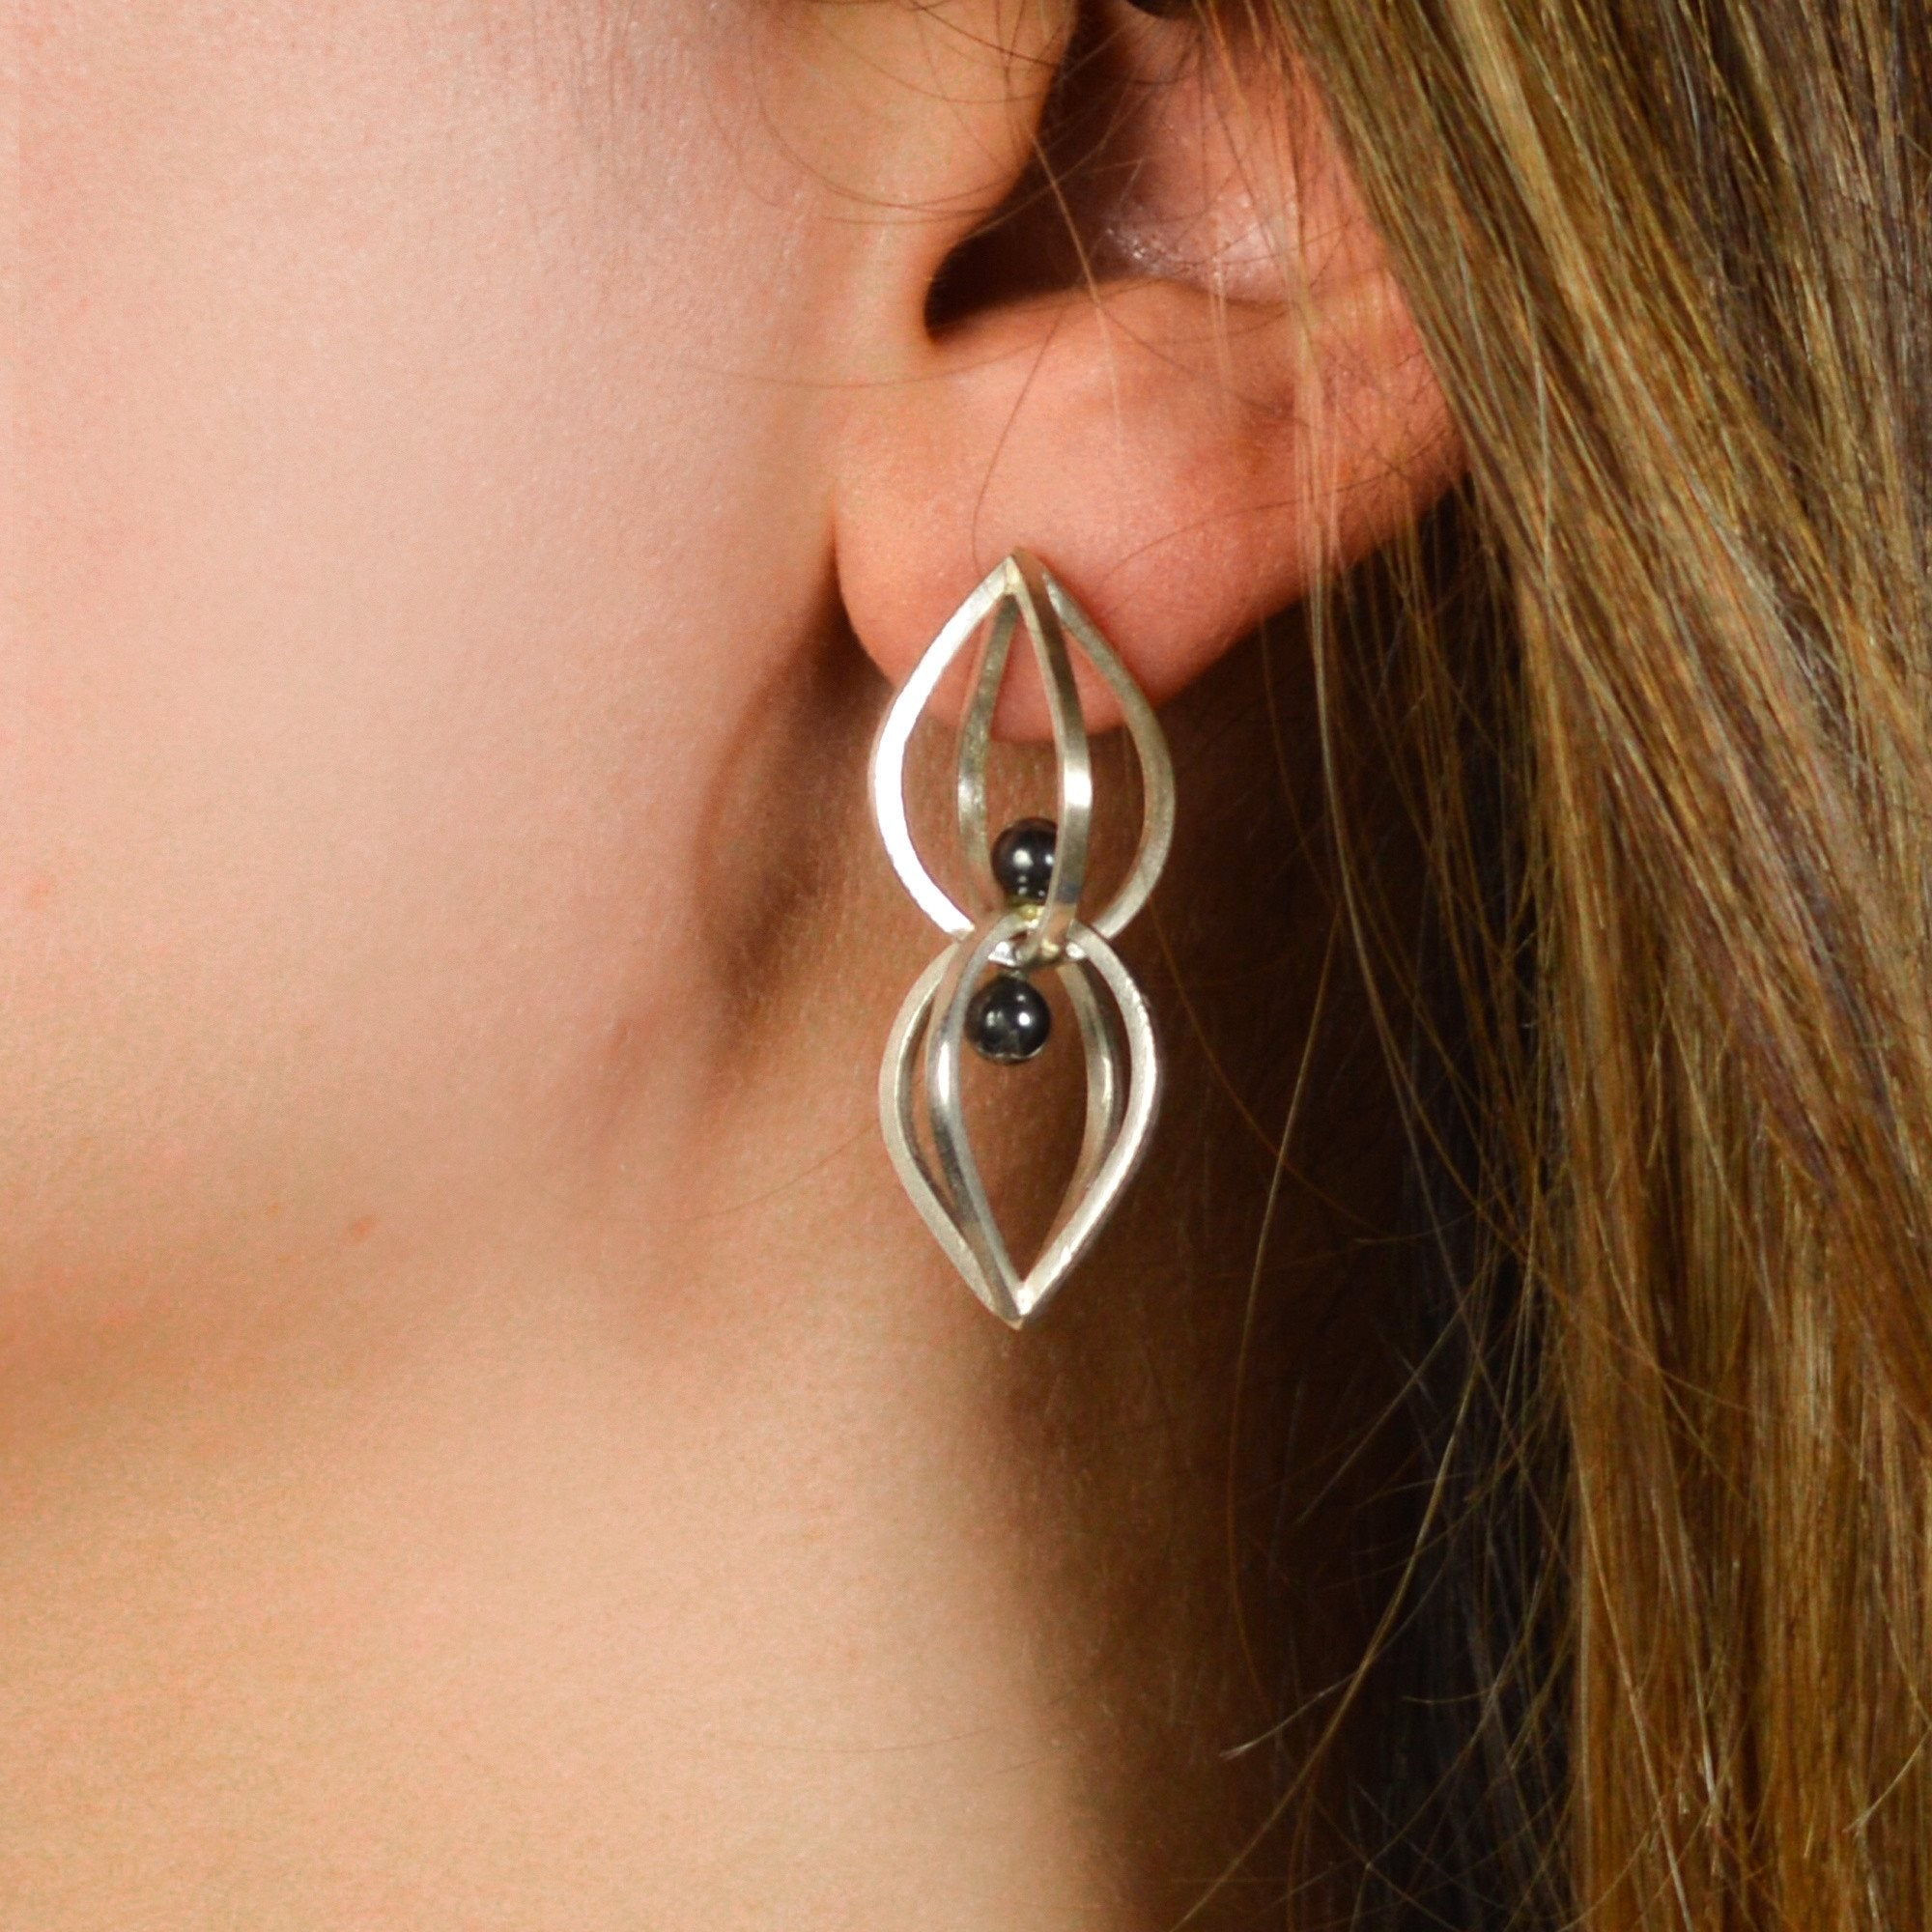 Seed Earrings in Sterling Silver, Hematite